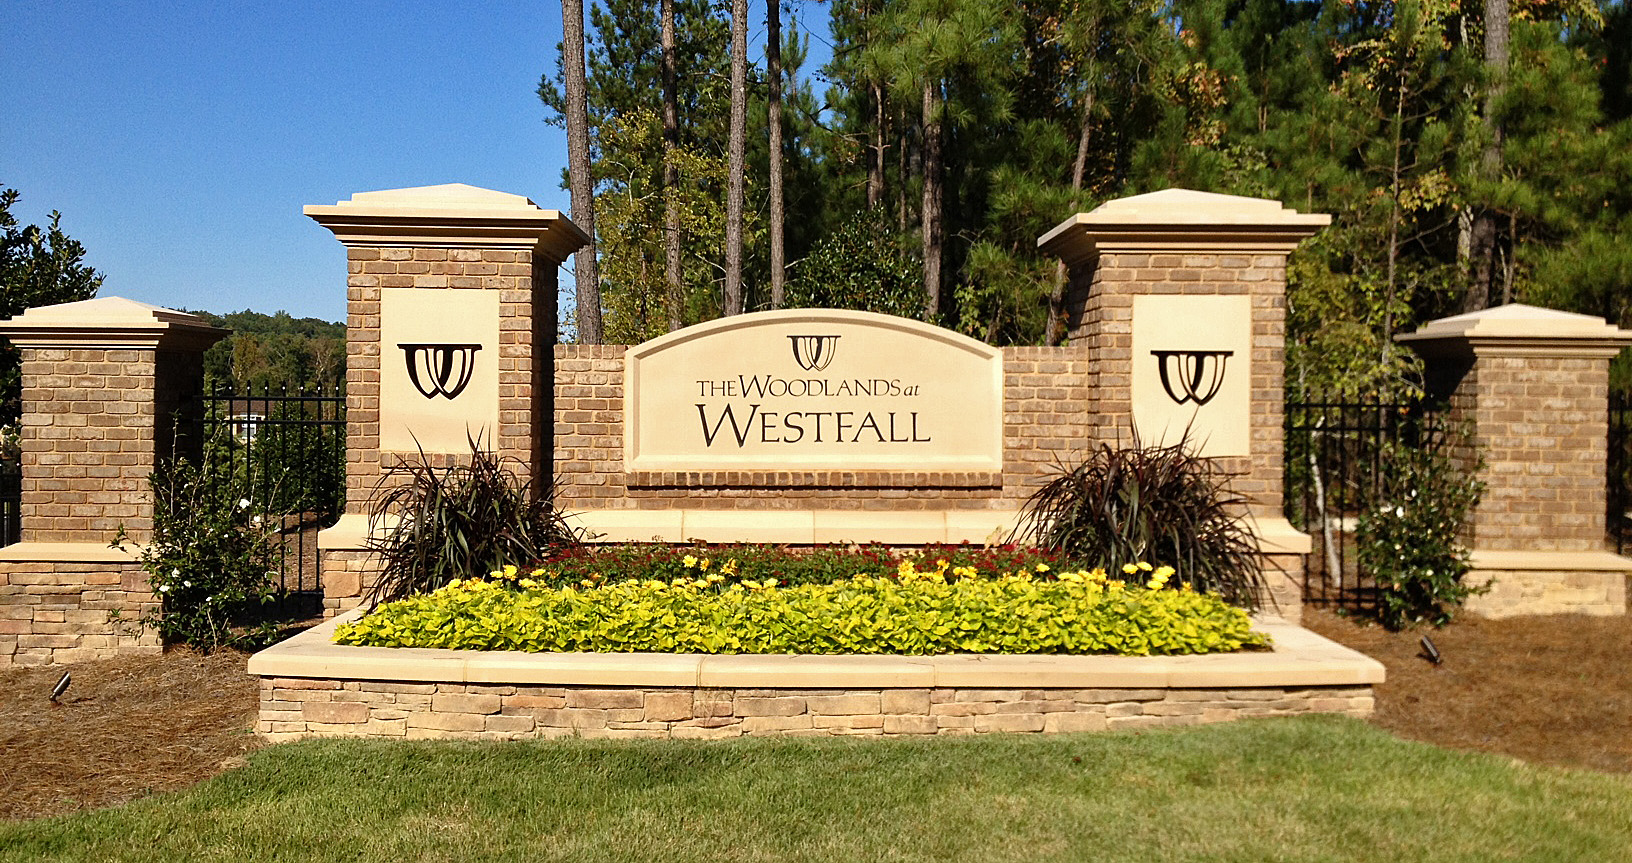 The Woodlands at Westfall